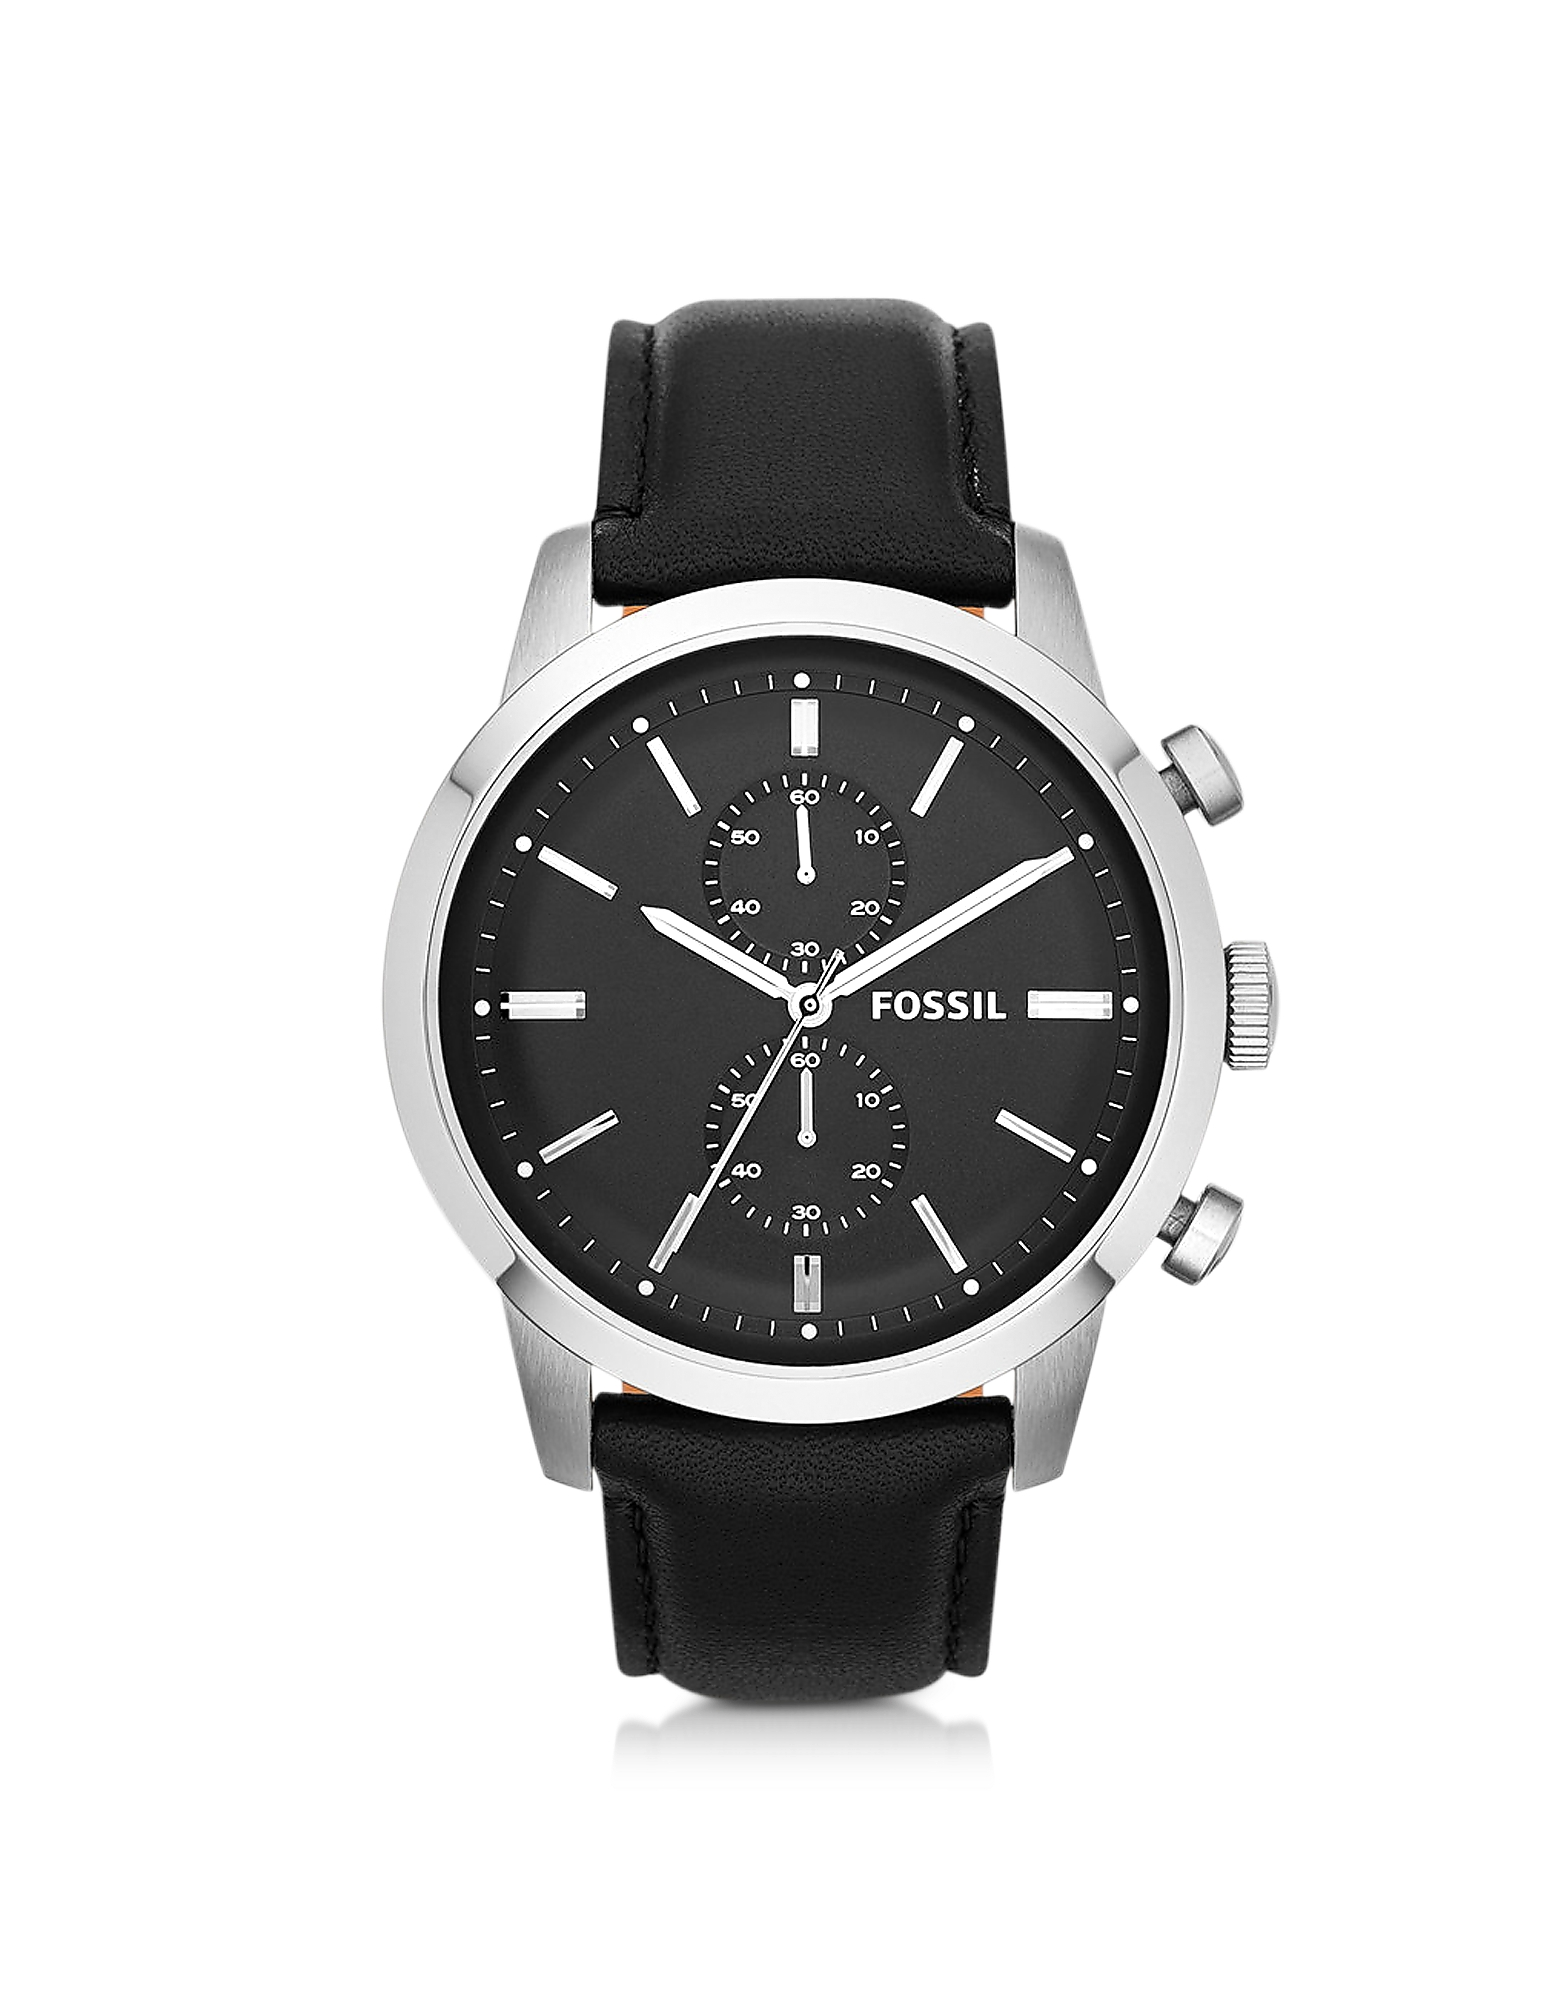 Fossil Men's Watches, Townsman Chronograph Black Leather Men's Watch